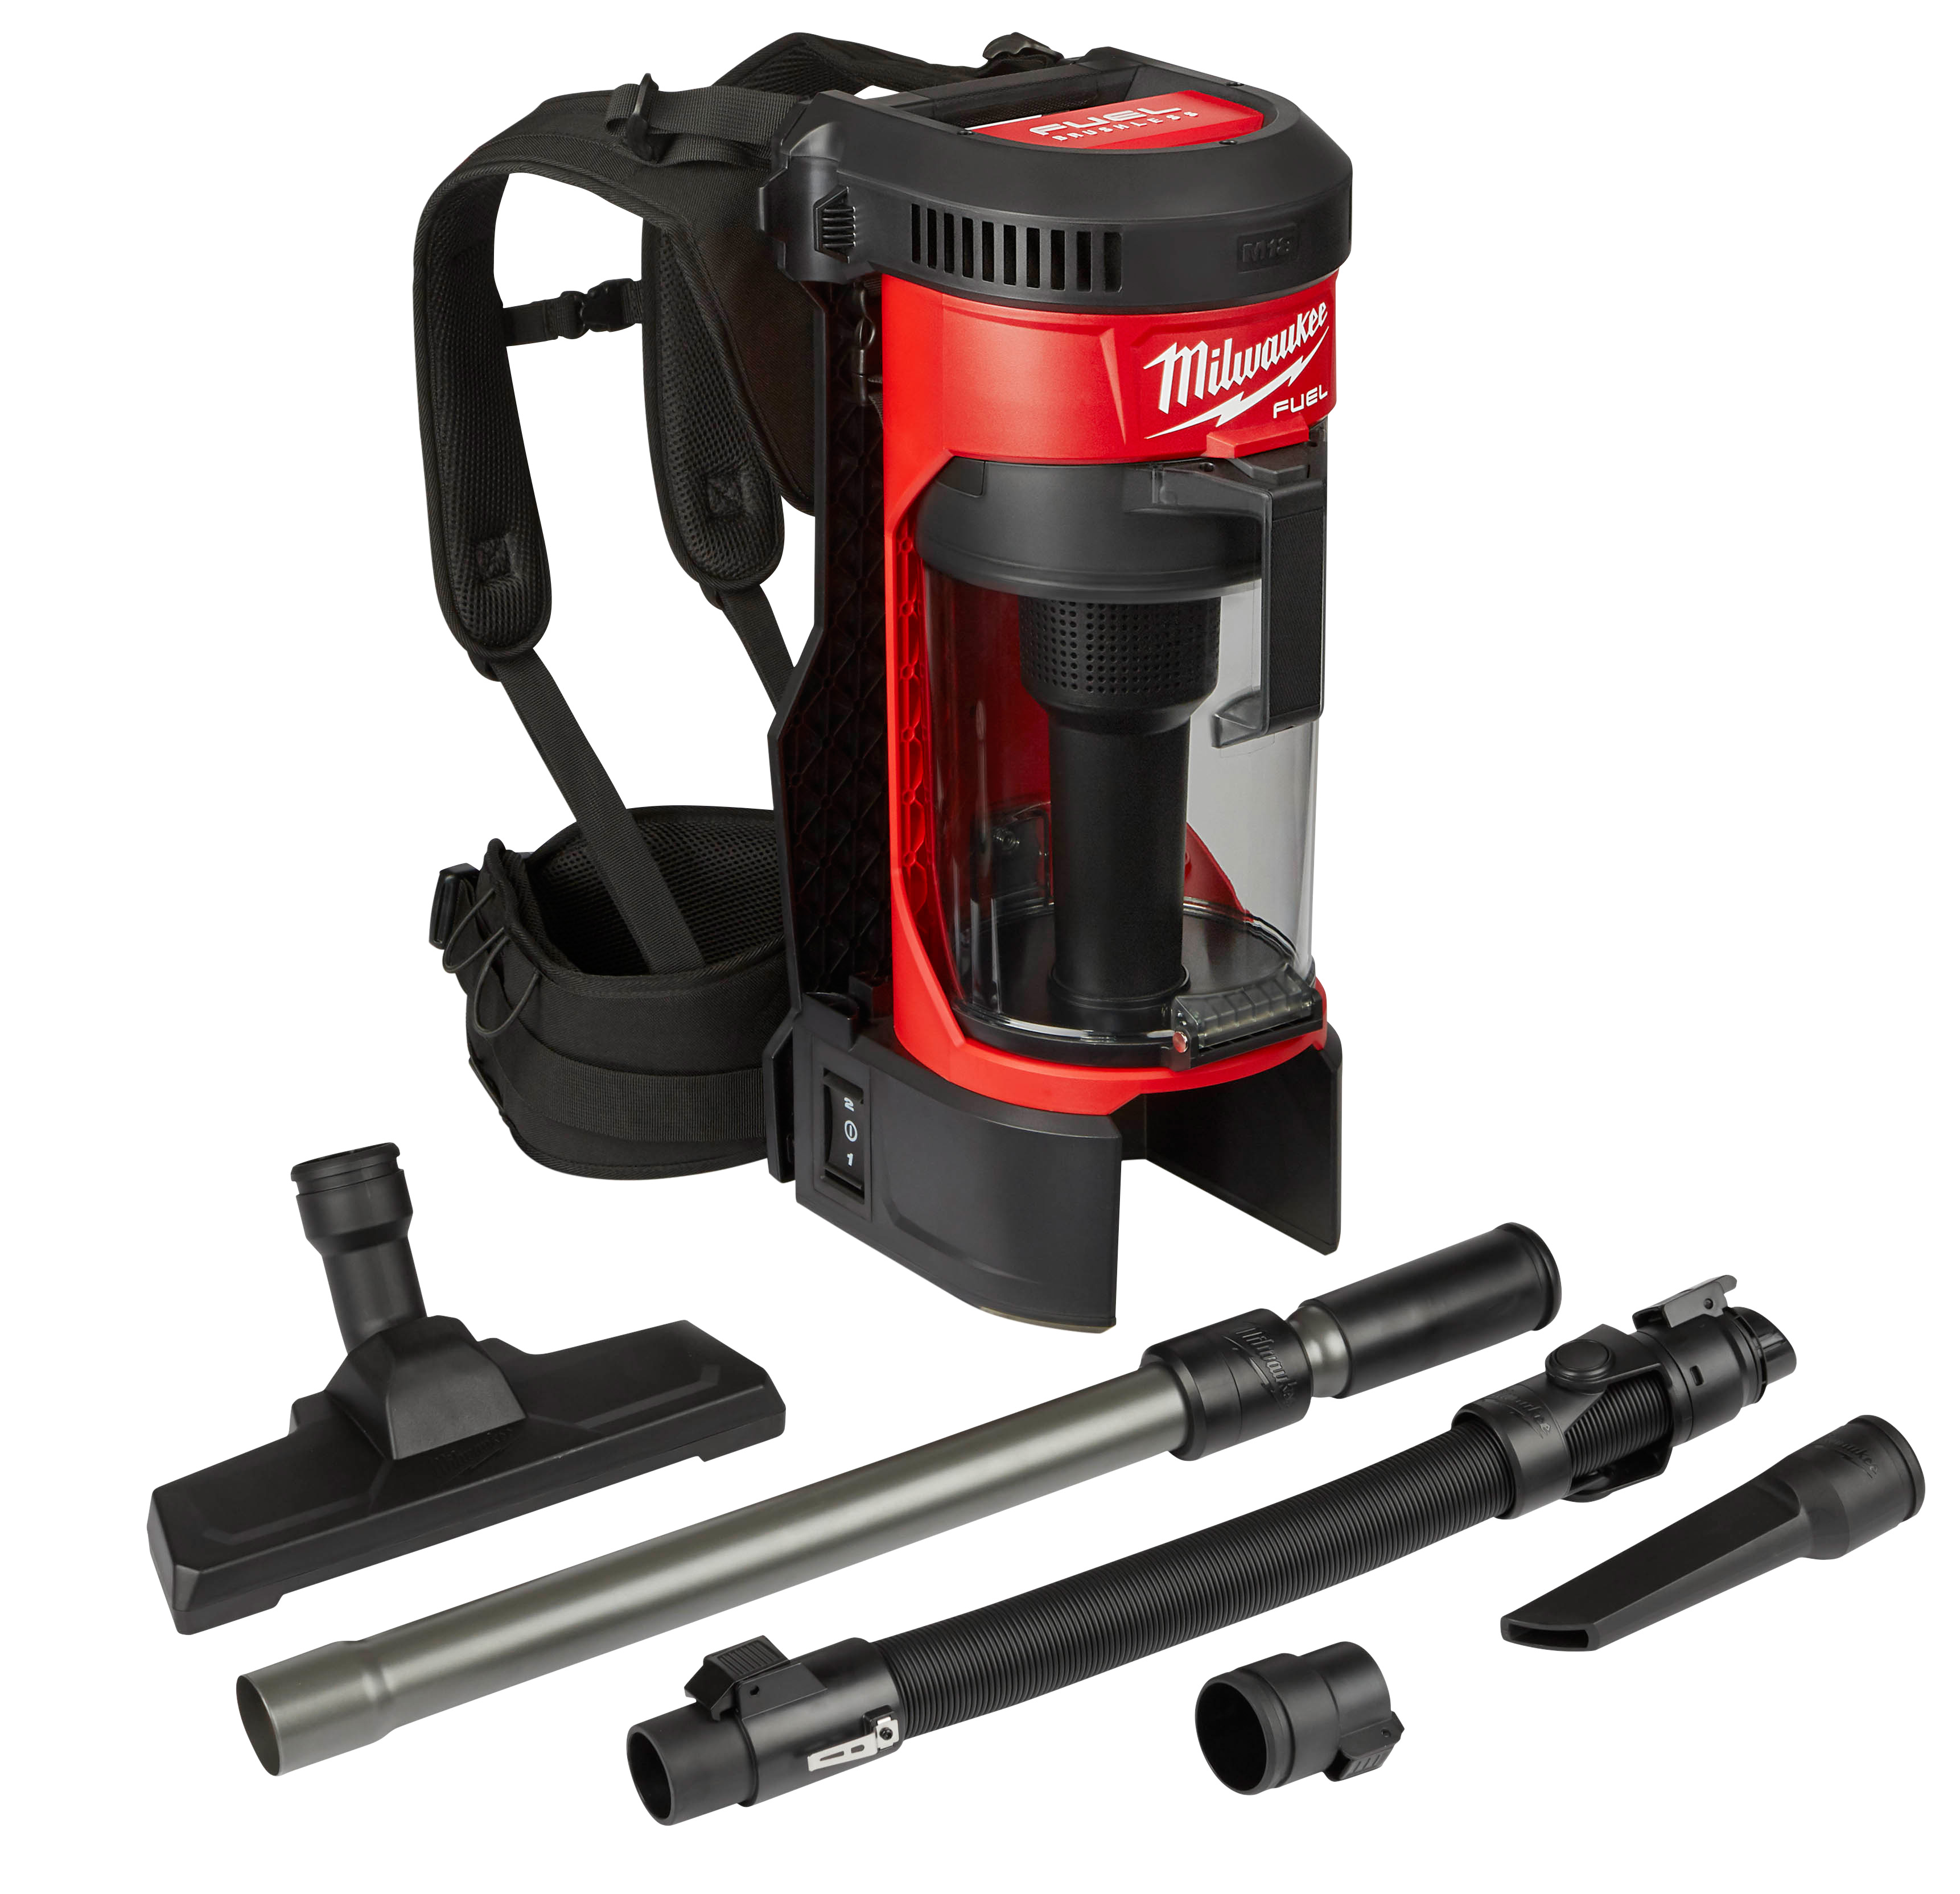 Milwaukee® M18™ FUEL™ 0885-20 3-in-1 Cordless Backpack Vacuum, 1 gal Tank, 159 W Power Rating, 18 VDC